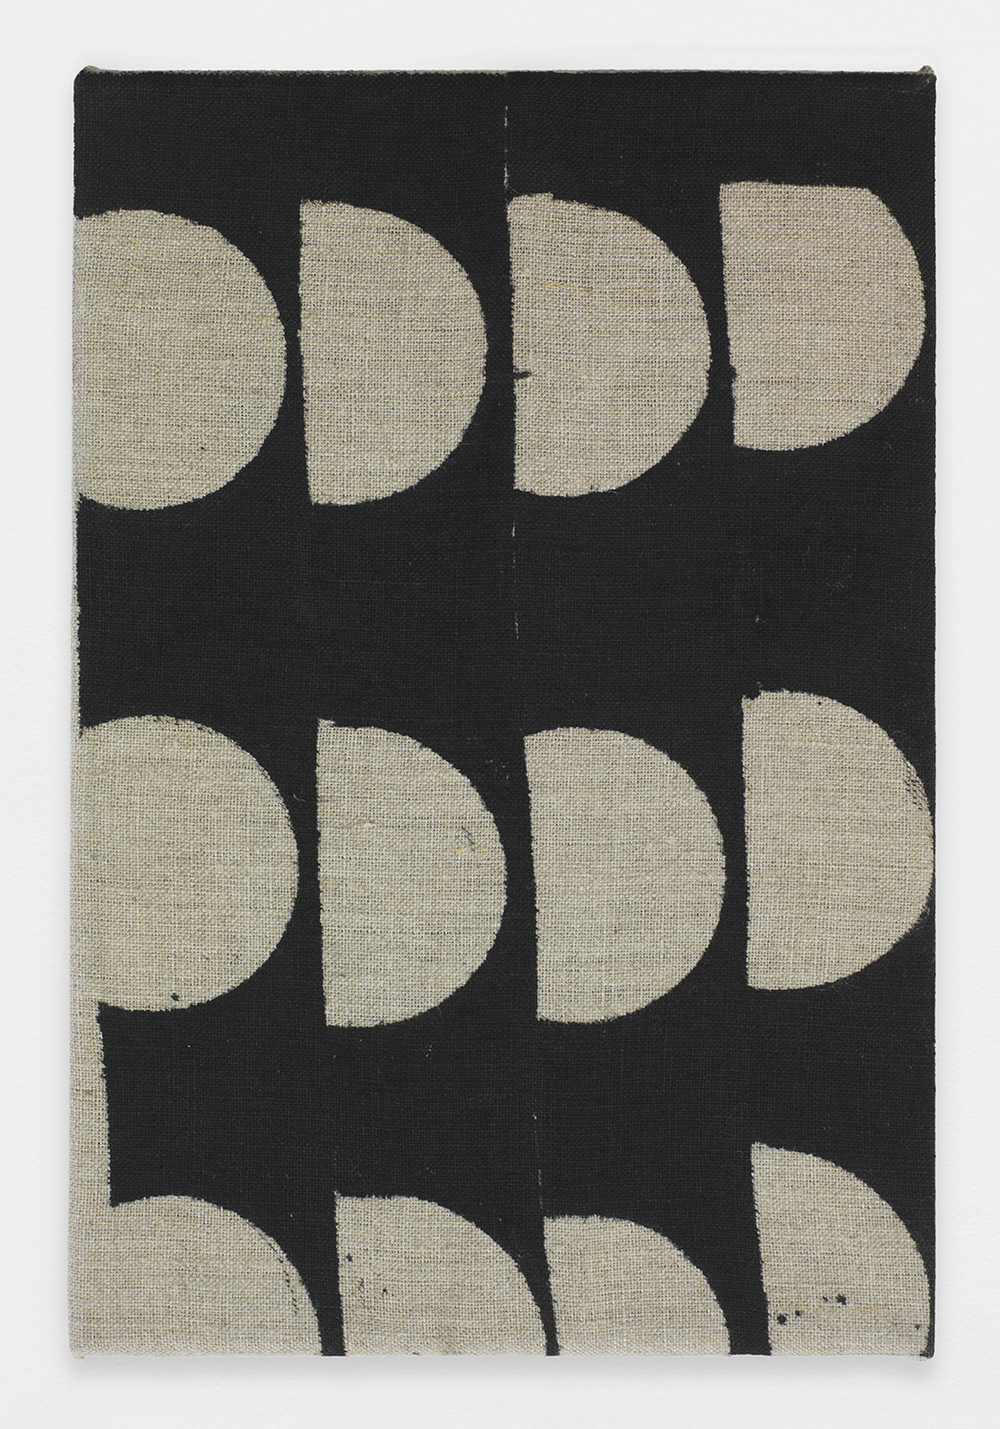 AUGUSTUS THOMPSON Untitled, 2013 Ink on linen 12 x 8 inches